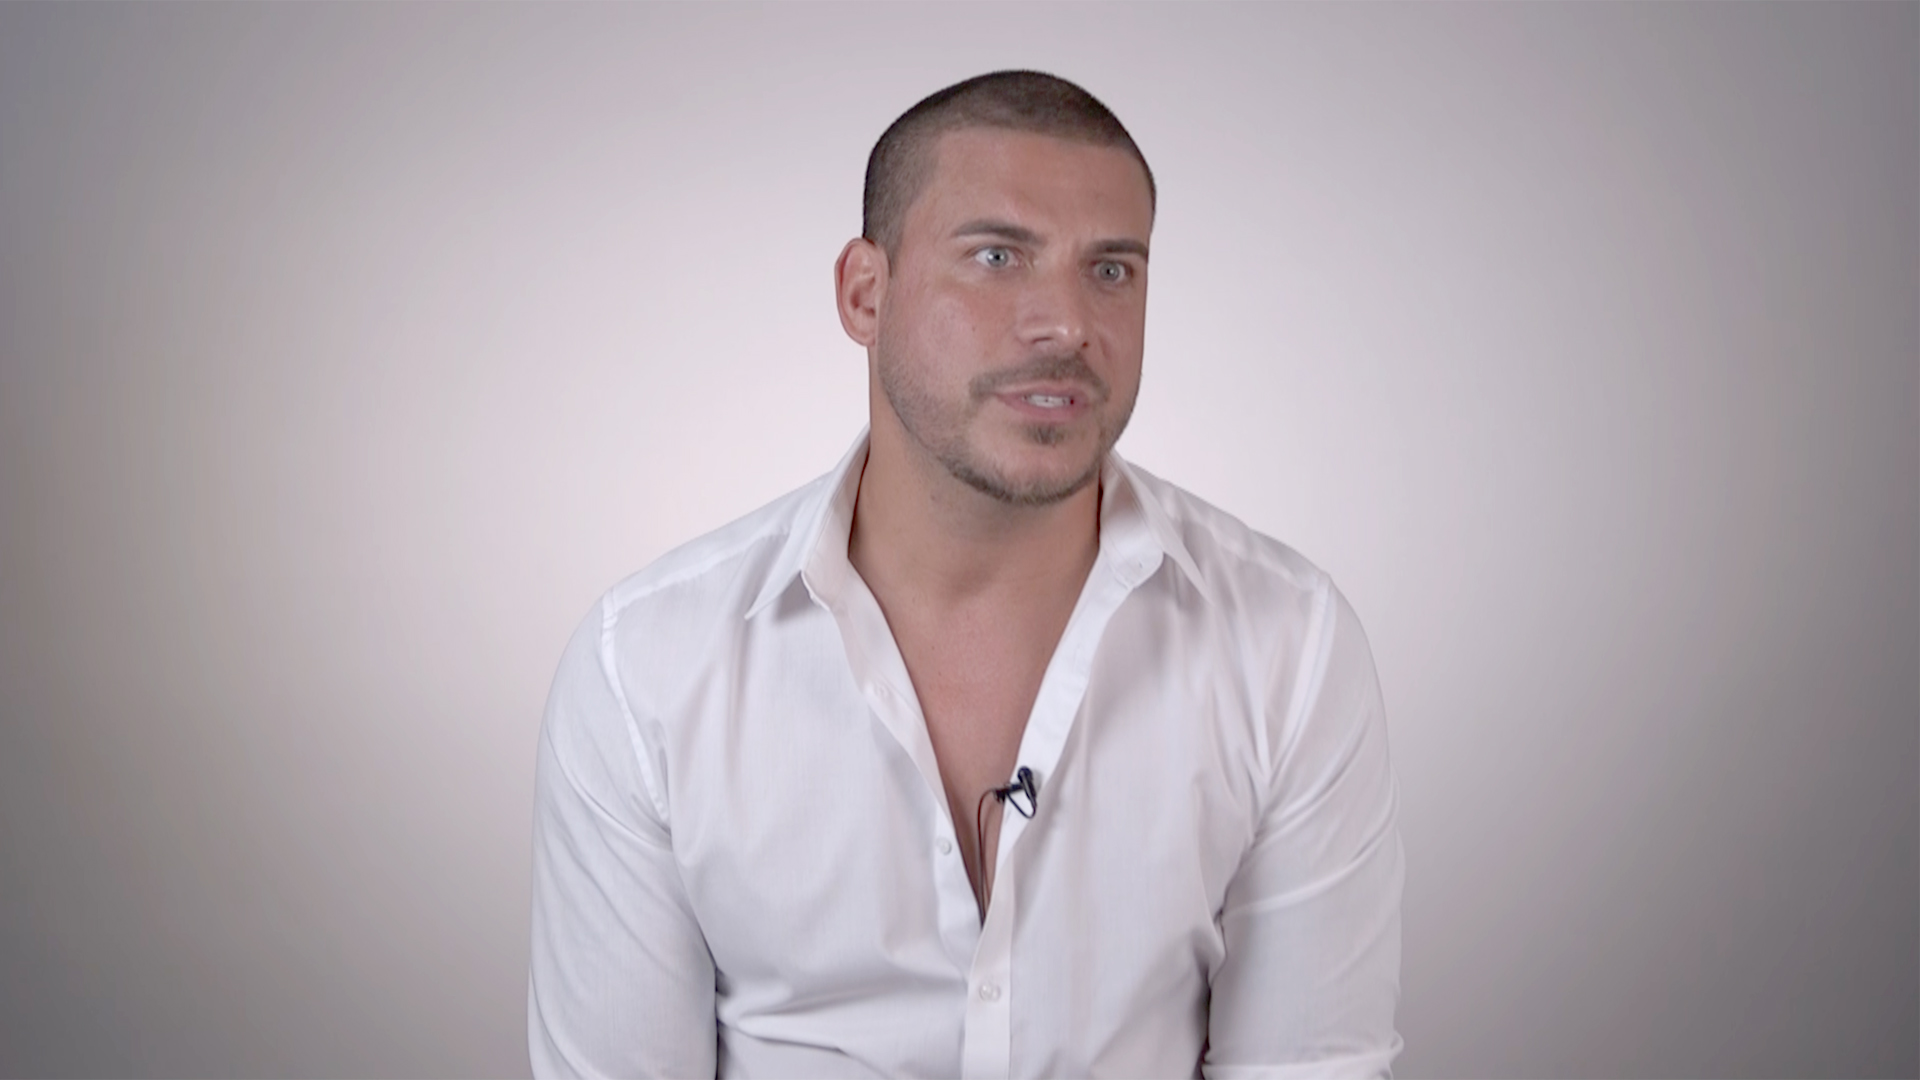 Are Jax Taylor and Brittany Cartwright Still Together?